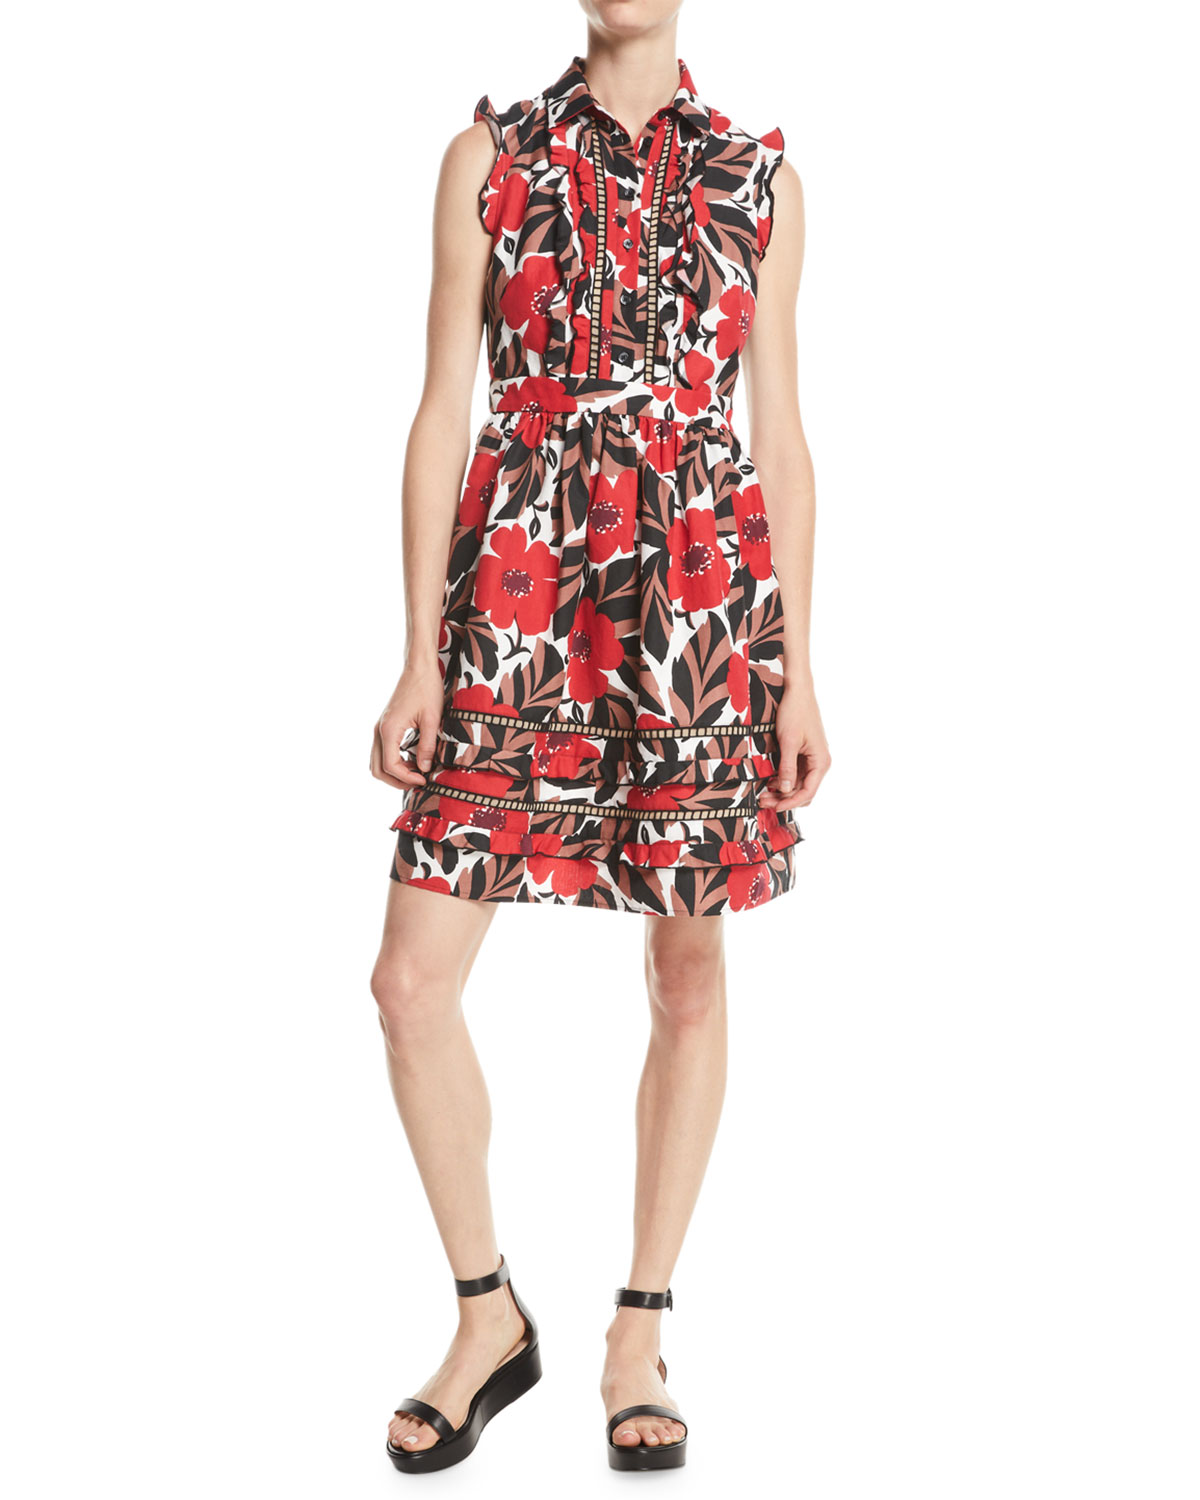 73236d0f8ae62c kate spade new york poppy field sleeveless shirt dress